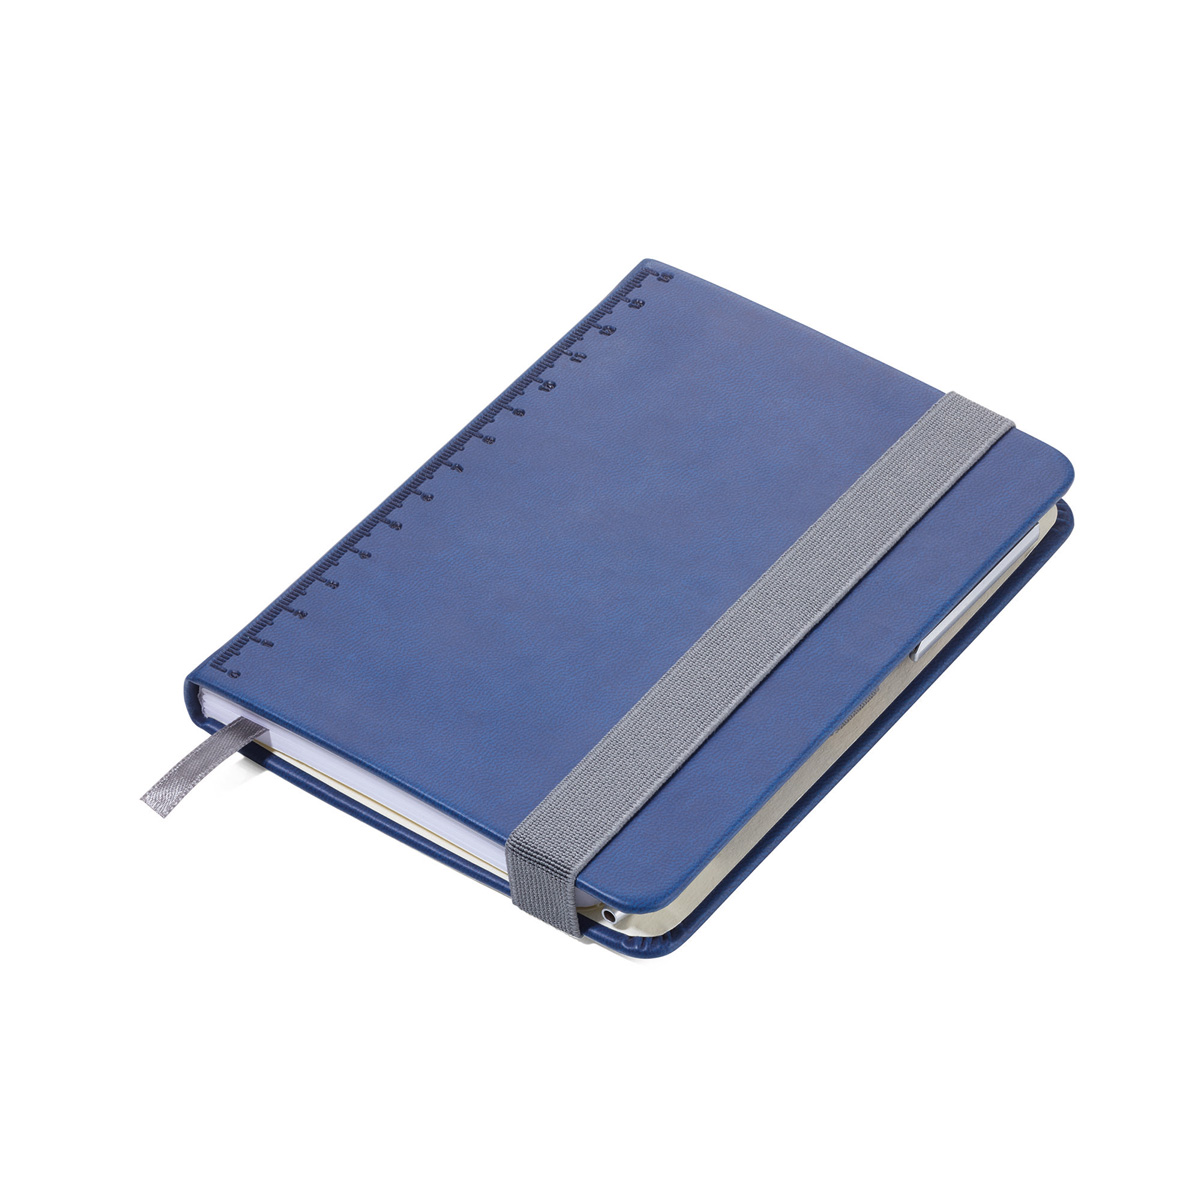 Troika A6 Notebook with Slim Construction Pen Blue